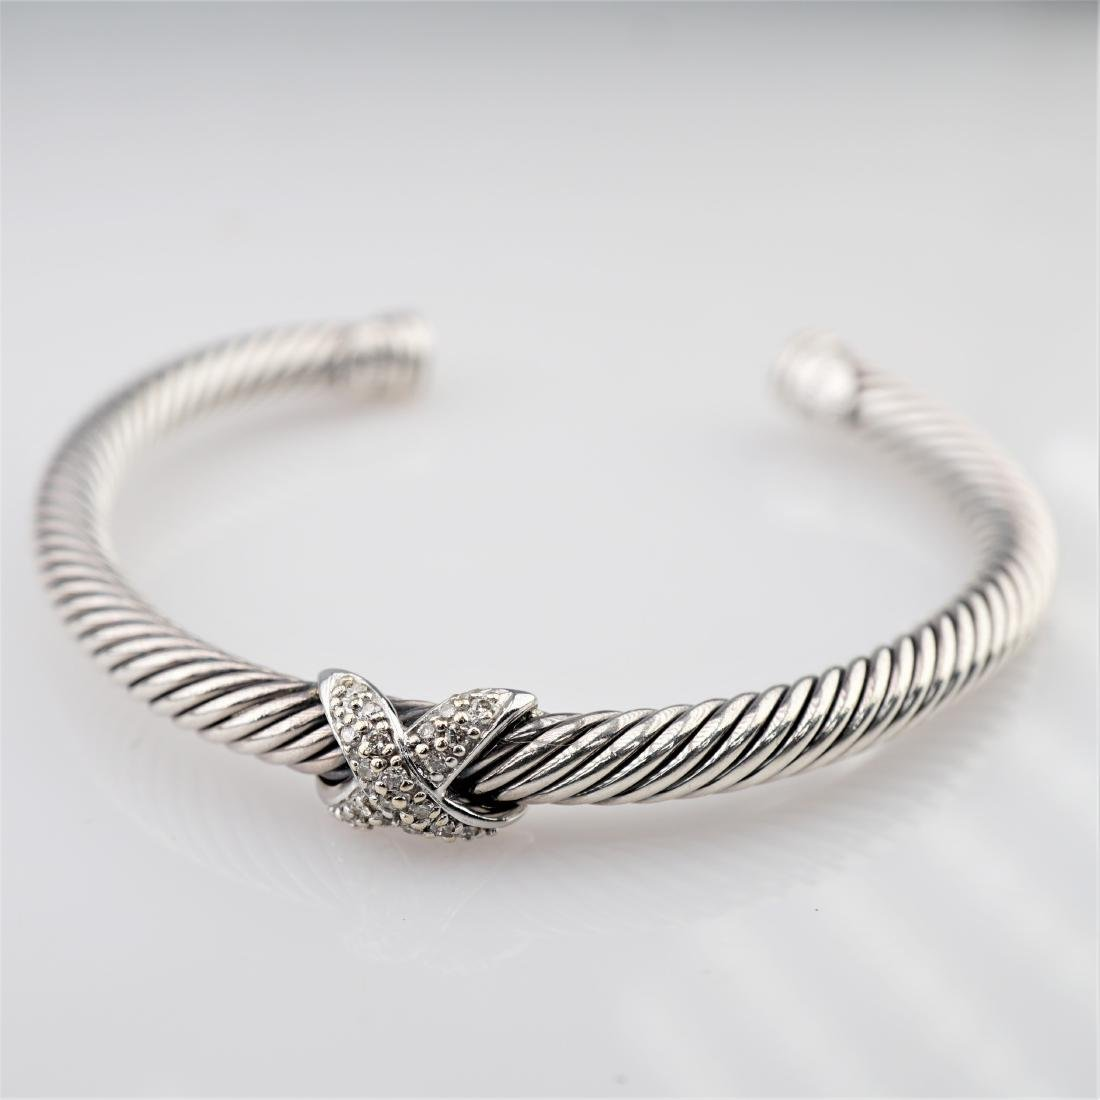 David Yurman Sterling &18k WG Diamond Bracelet